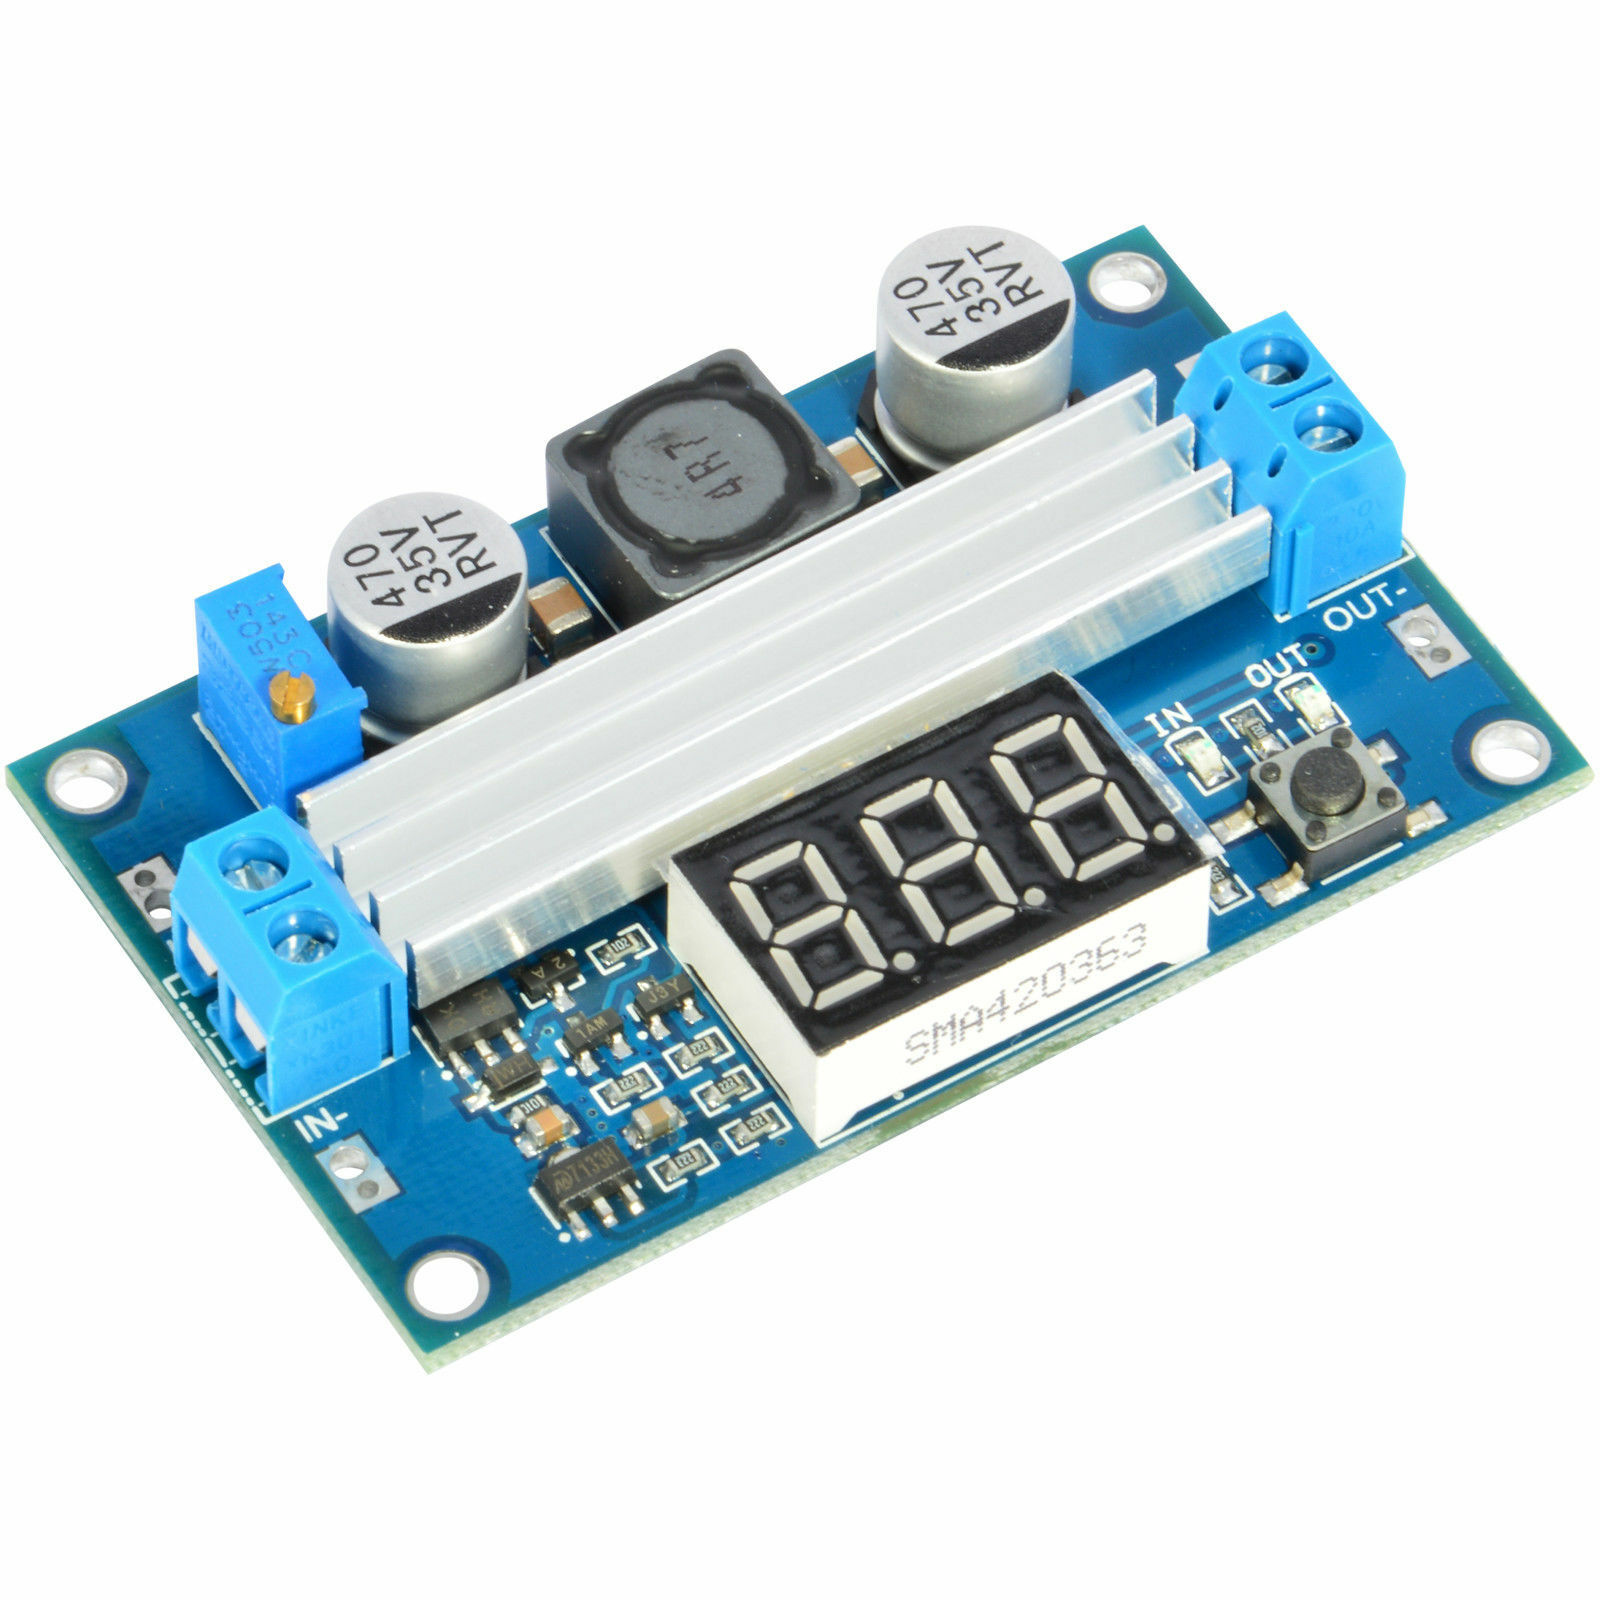 Jacobsparts Fp5139 100w Dc Boost Step Up Voltage Converter Module Automatic Regulator With Protection Circuit Free Electronic Stock Photo